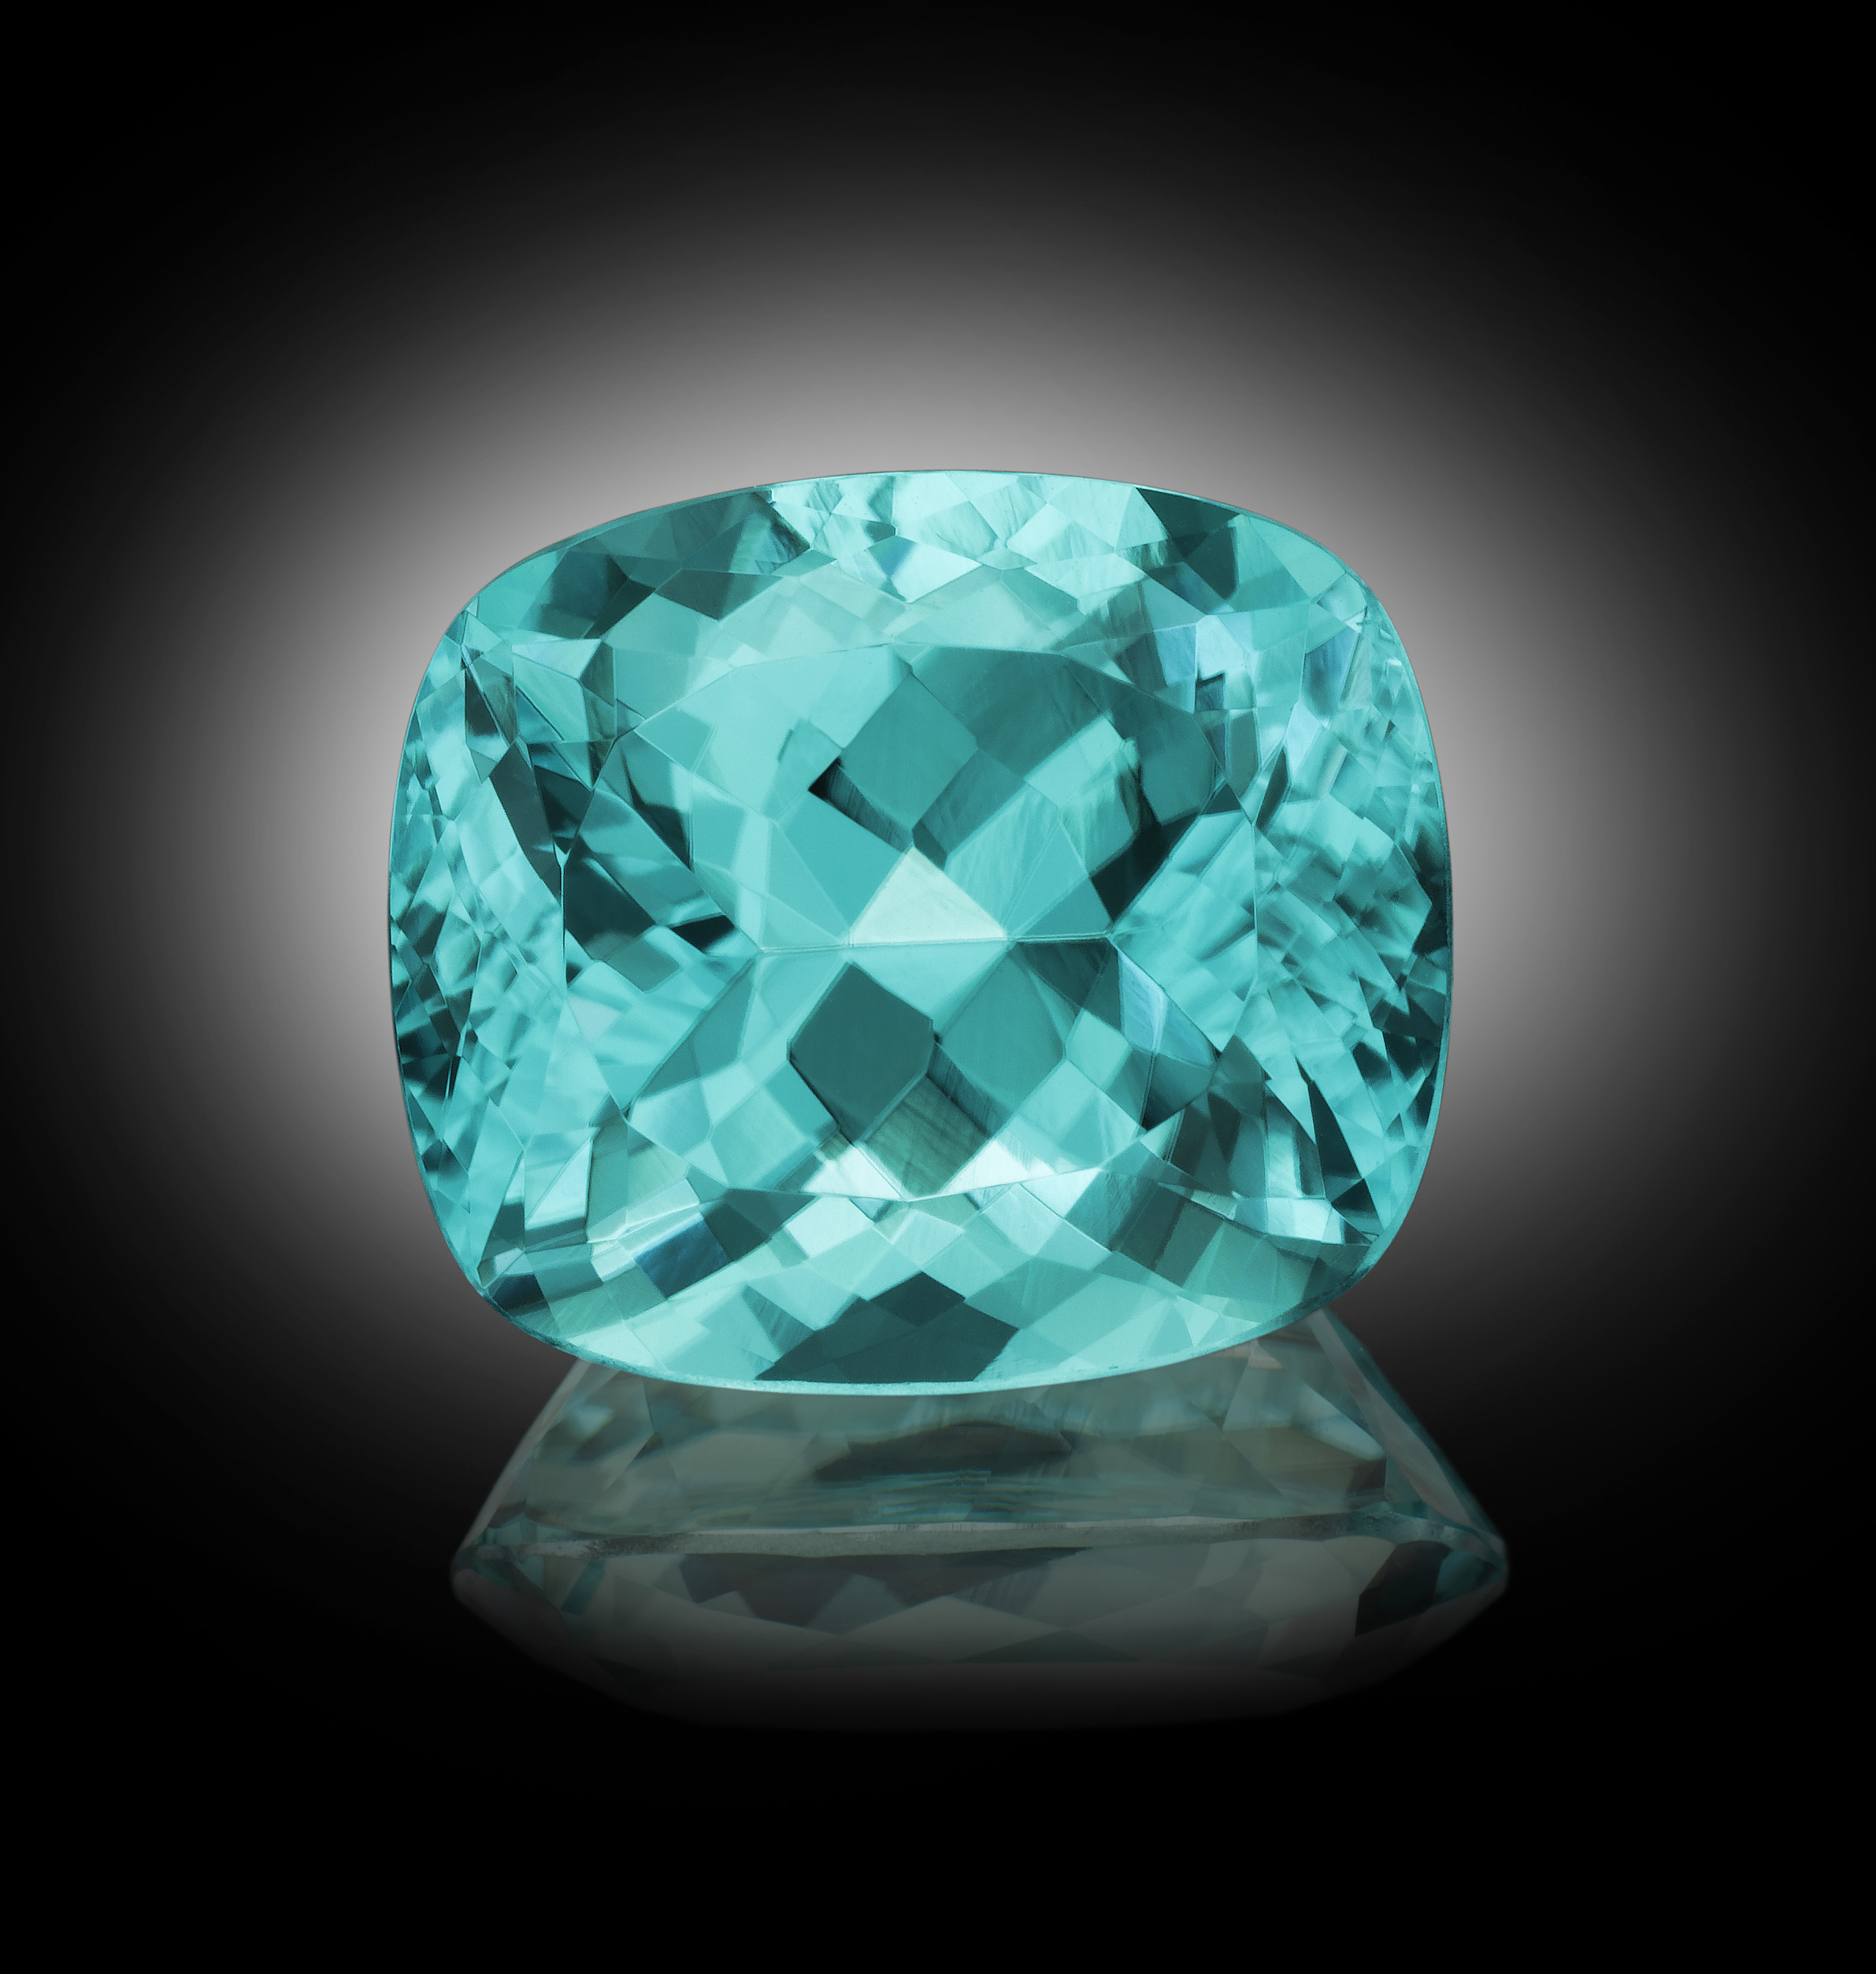 f9dd1cc70 Rare, Precious and Ready for Primetime: Paraiba Tourmaline | American Gem  Society Blog